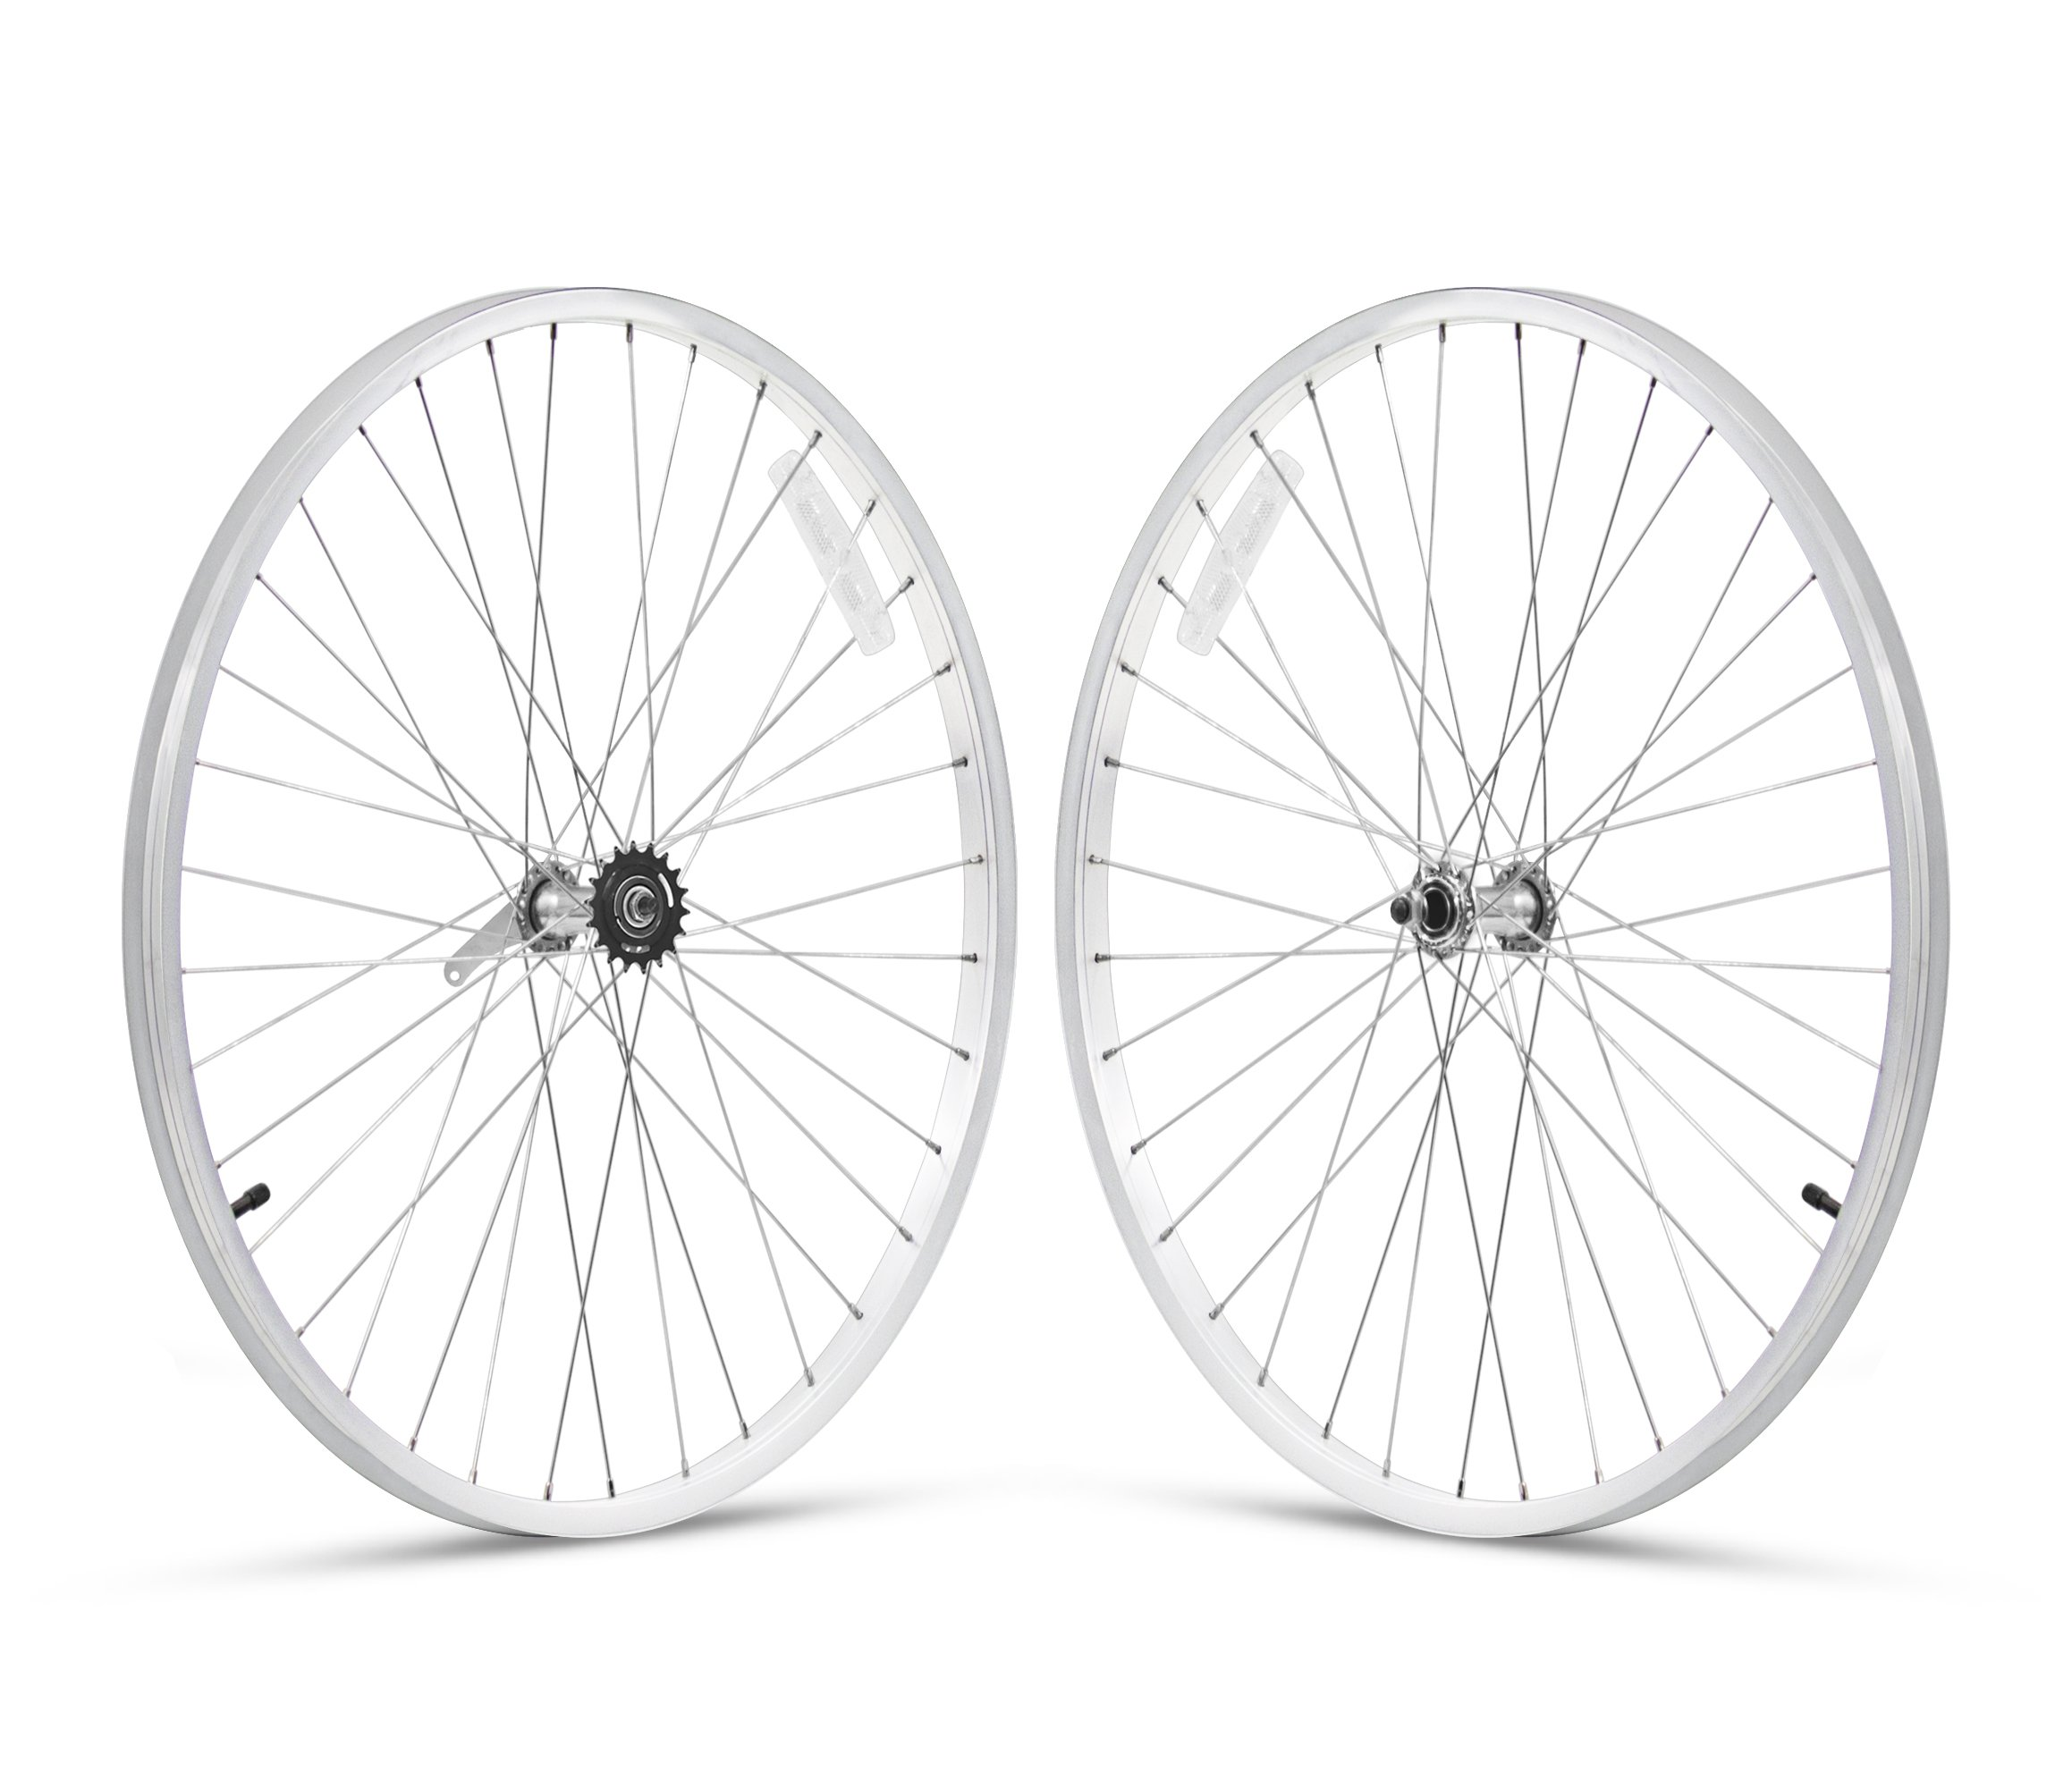 Firmstrong 1-Speed Beach Cruiser Bicycle Wheelset, Front/Rear, White, 26''